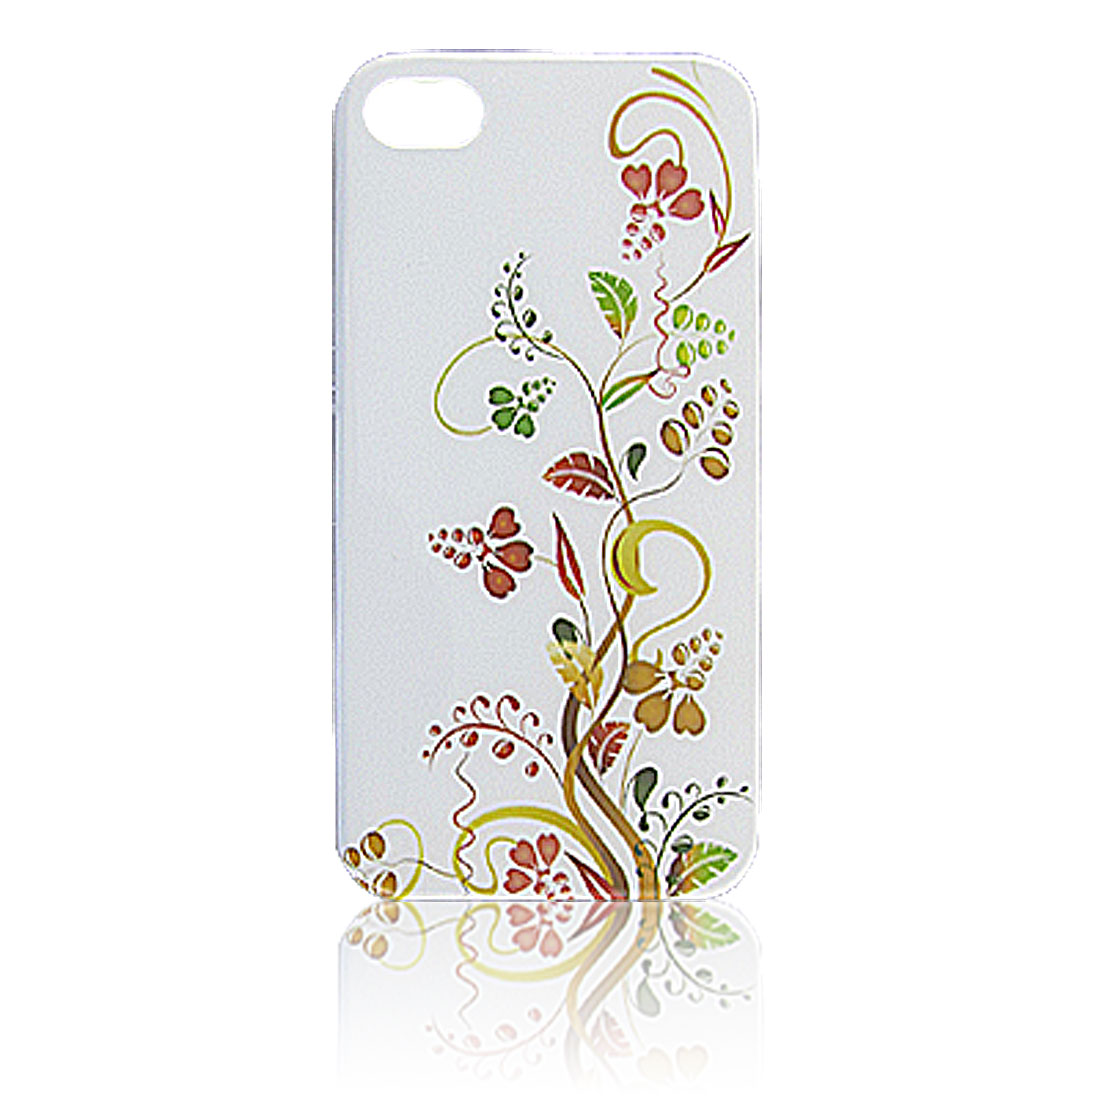 White Hard Plastic IMD Swirl Floral Shield Cover for iPhone 4 4G 4S